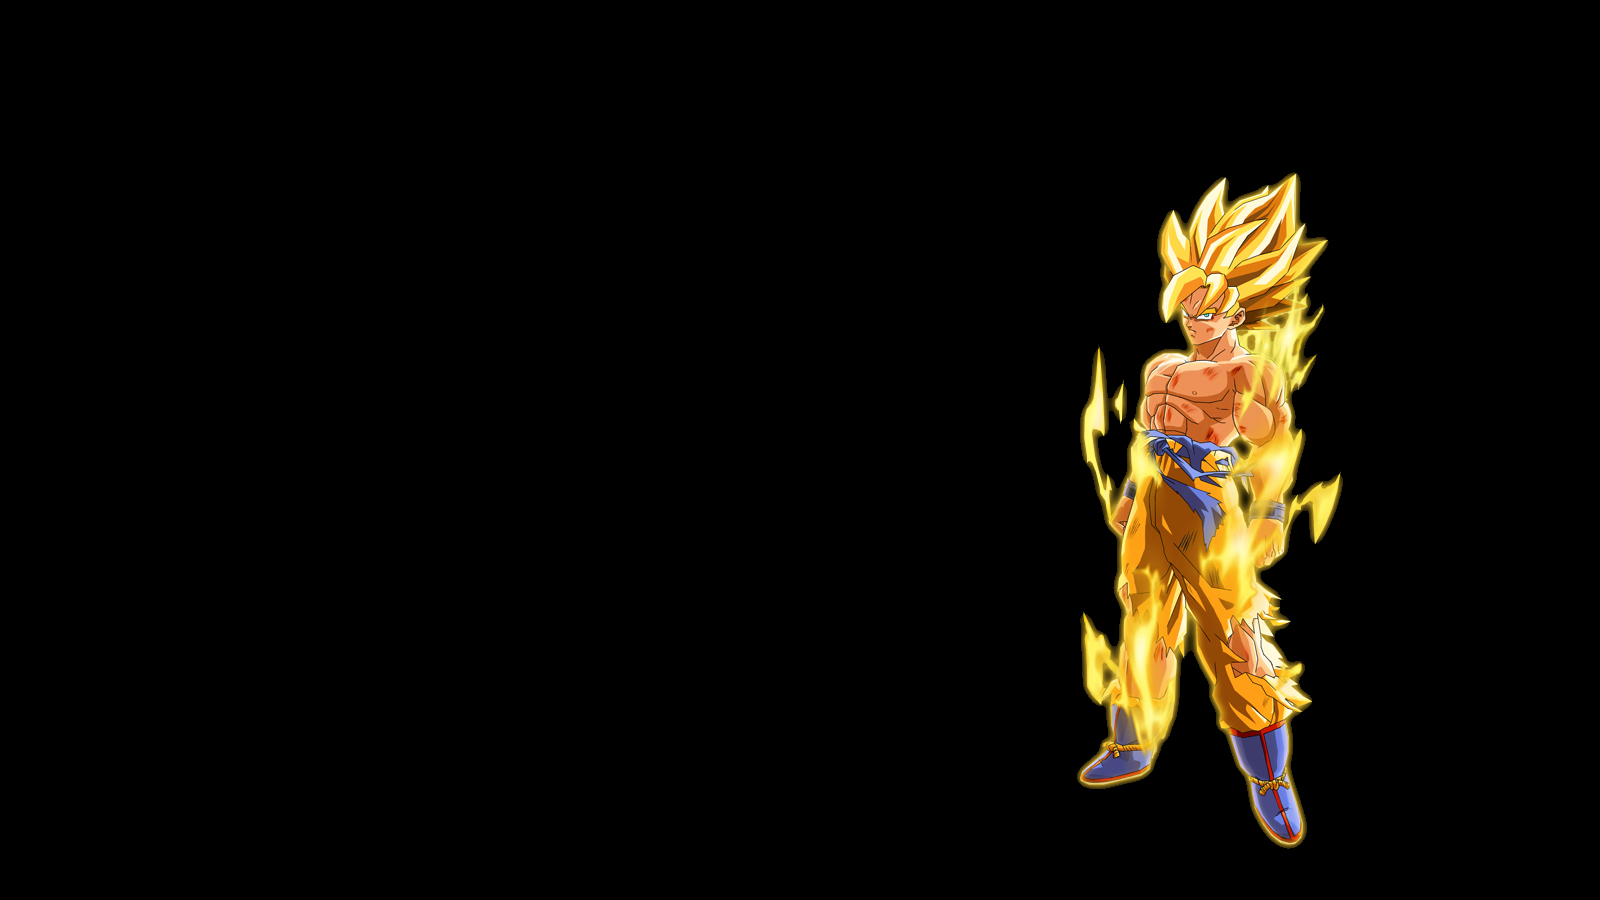 black goku dragon ball HD Wallpaper